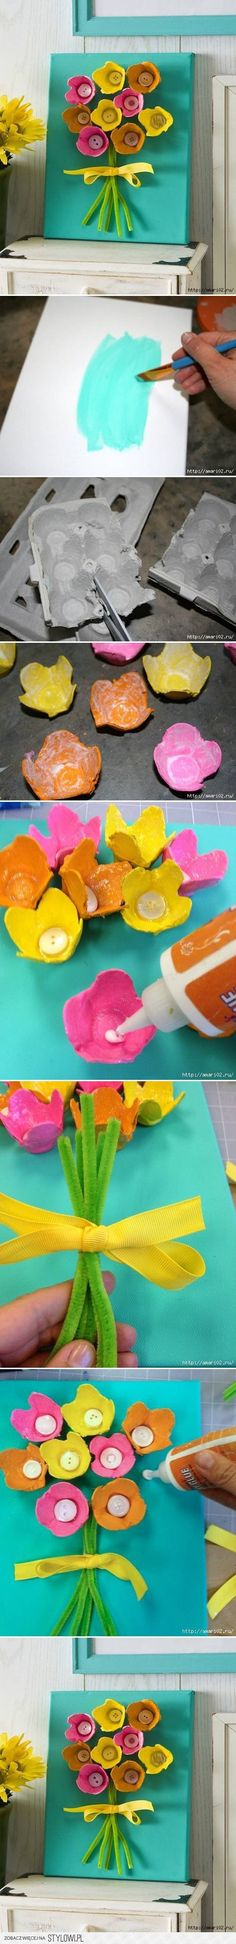 Easter crafts, crafts for kids, egg carton crafts, easy diy crafts Easy Diy Crafts, Crafts To Do, Crafts For Kids, Arts And Crafts, Fun Diy, Mother's Day Projects, Craft Projects, Spring Crafts, Holiday Crafts